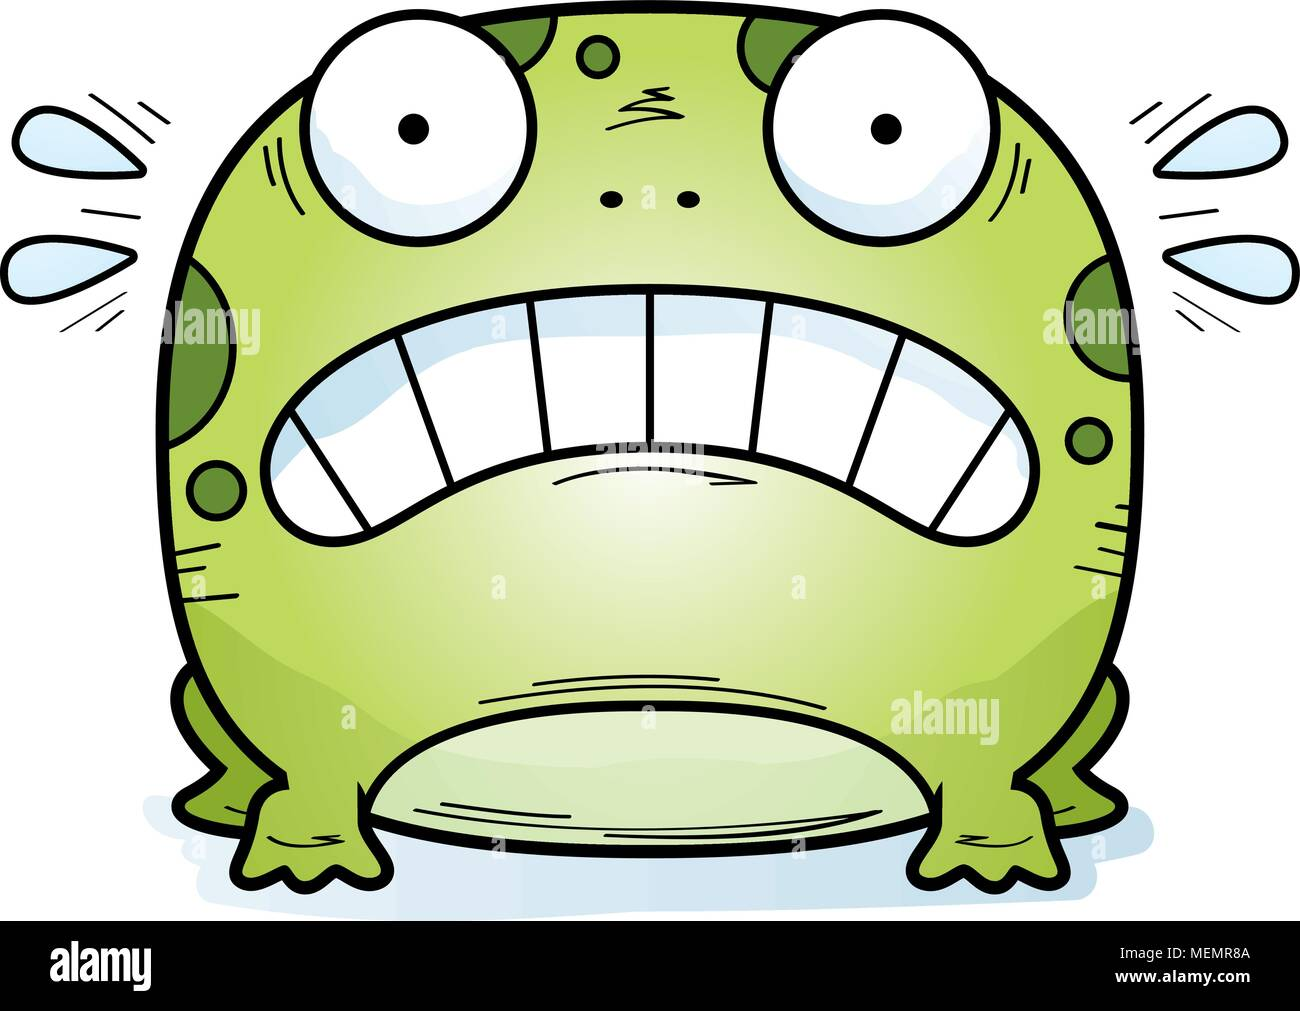 A cartoon illustration of a frog looking scared. Stock Vector